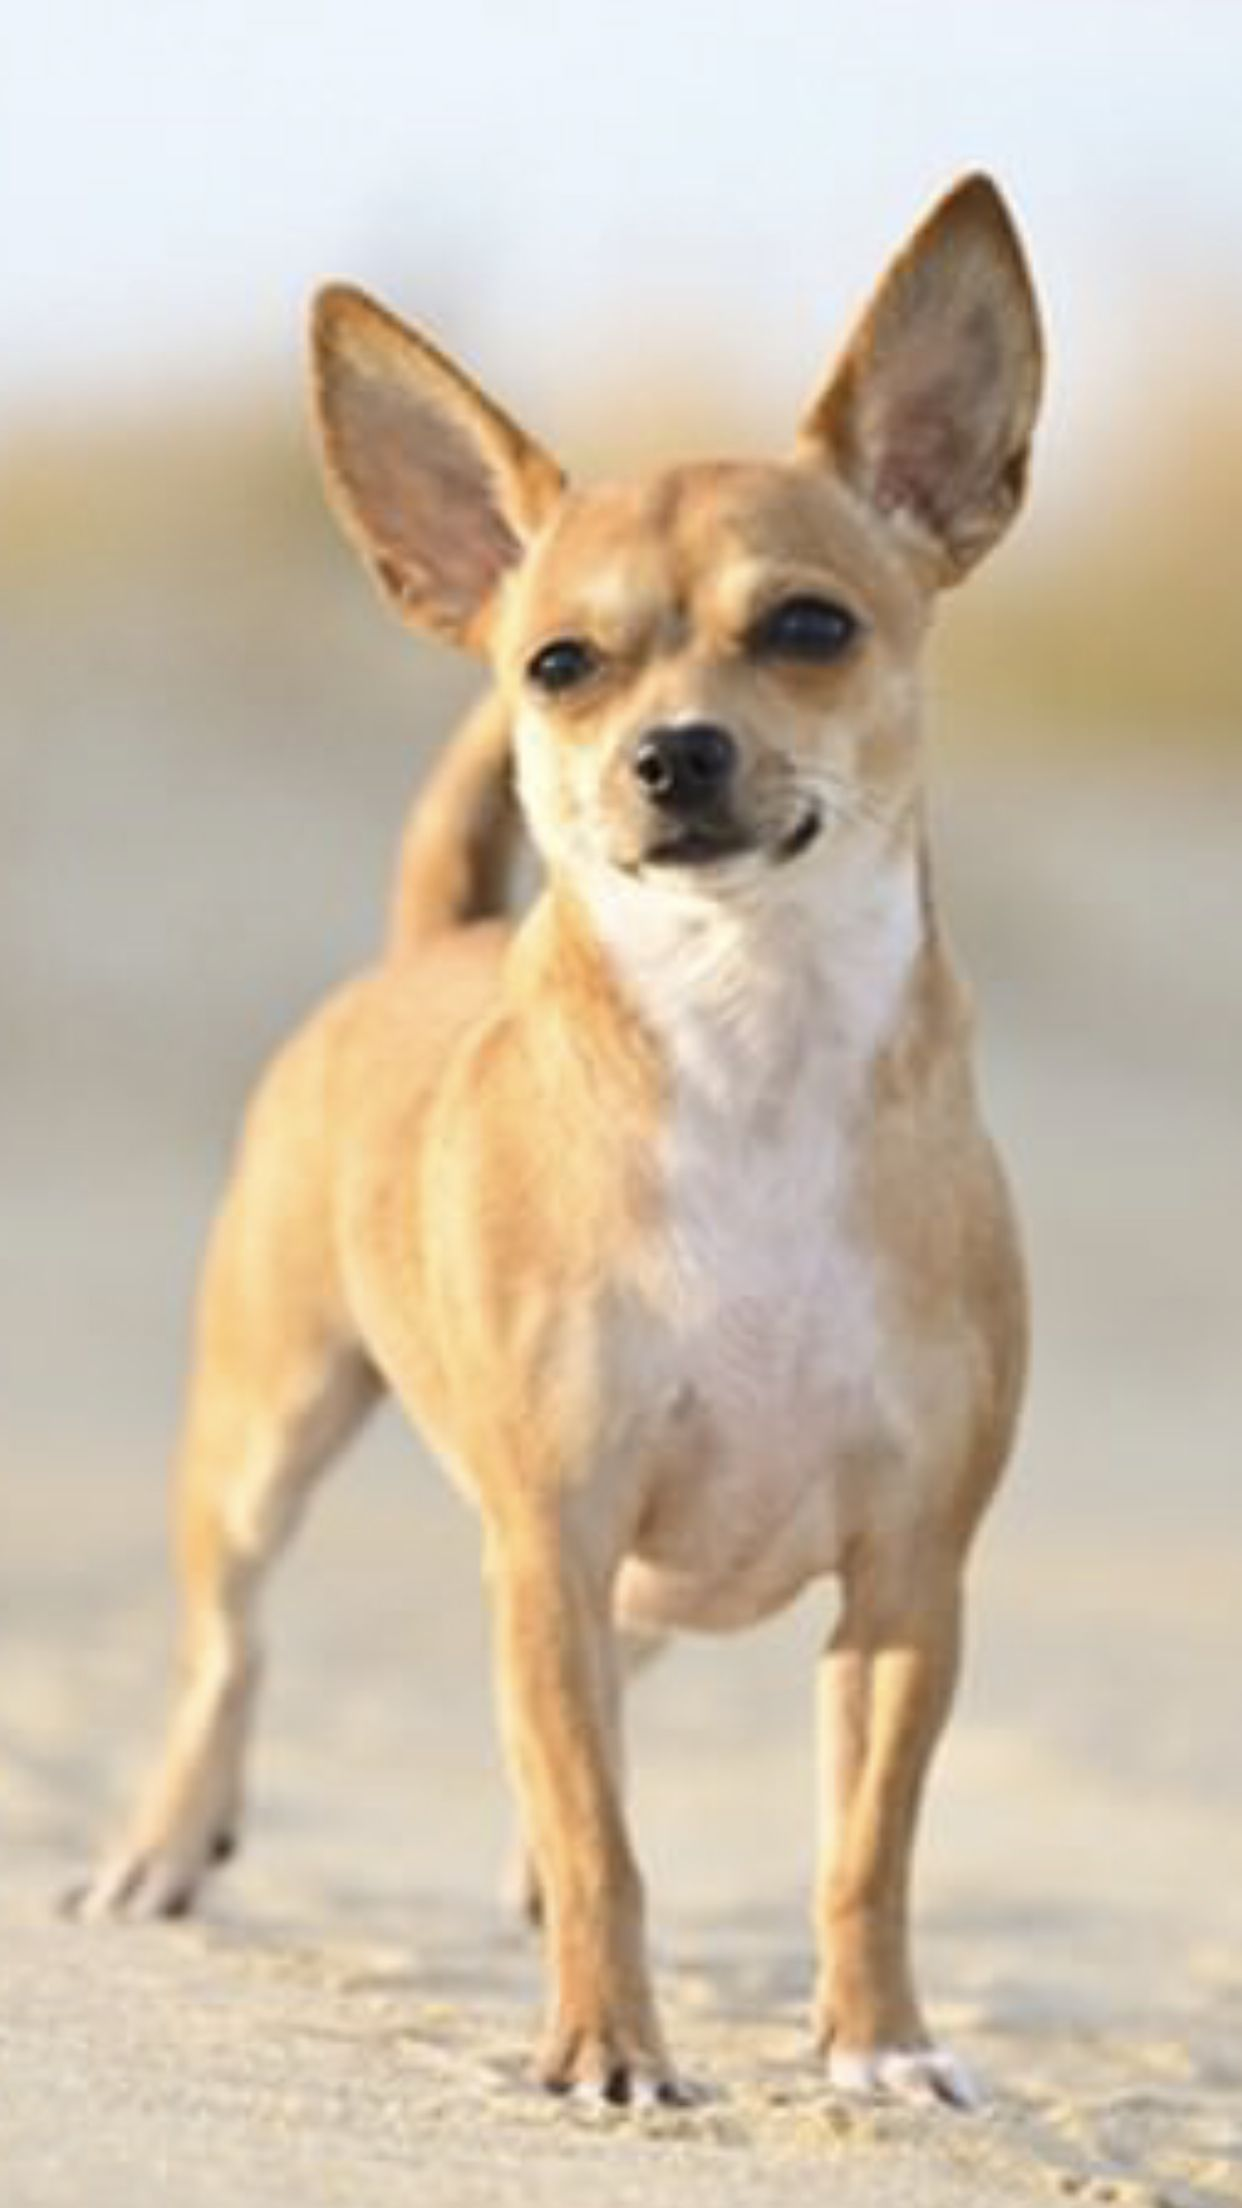 Chihuahua Is One Of The Cutest Smallest Dog Breeds They Are Very